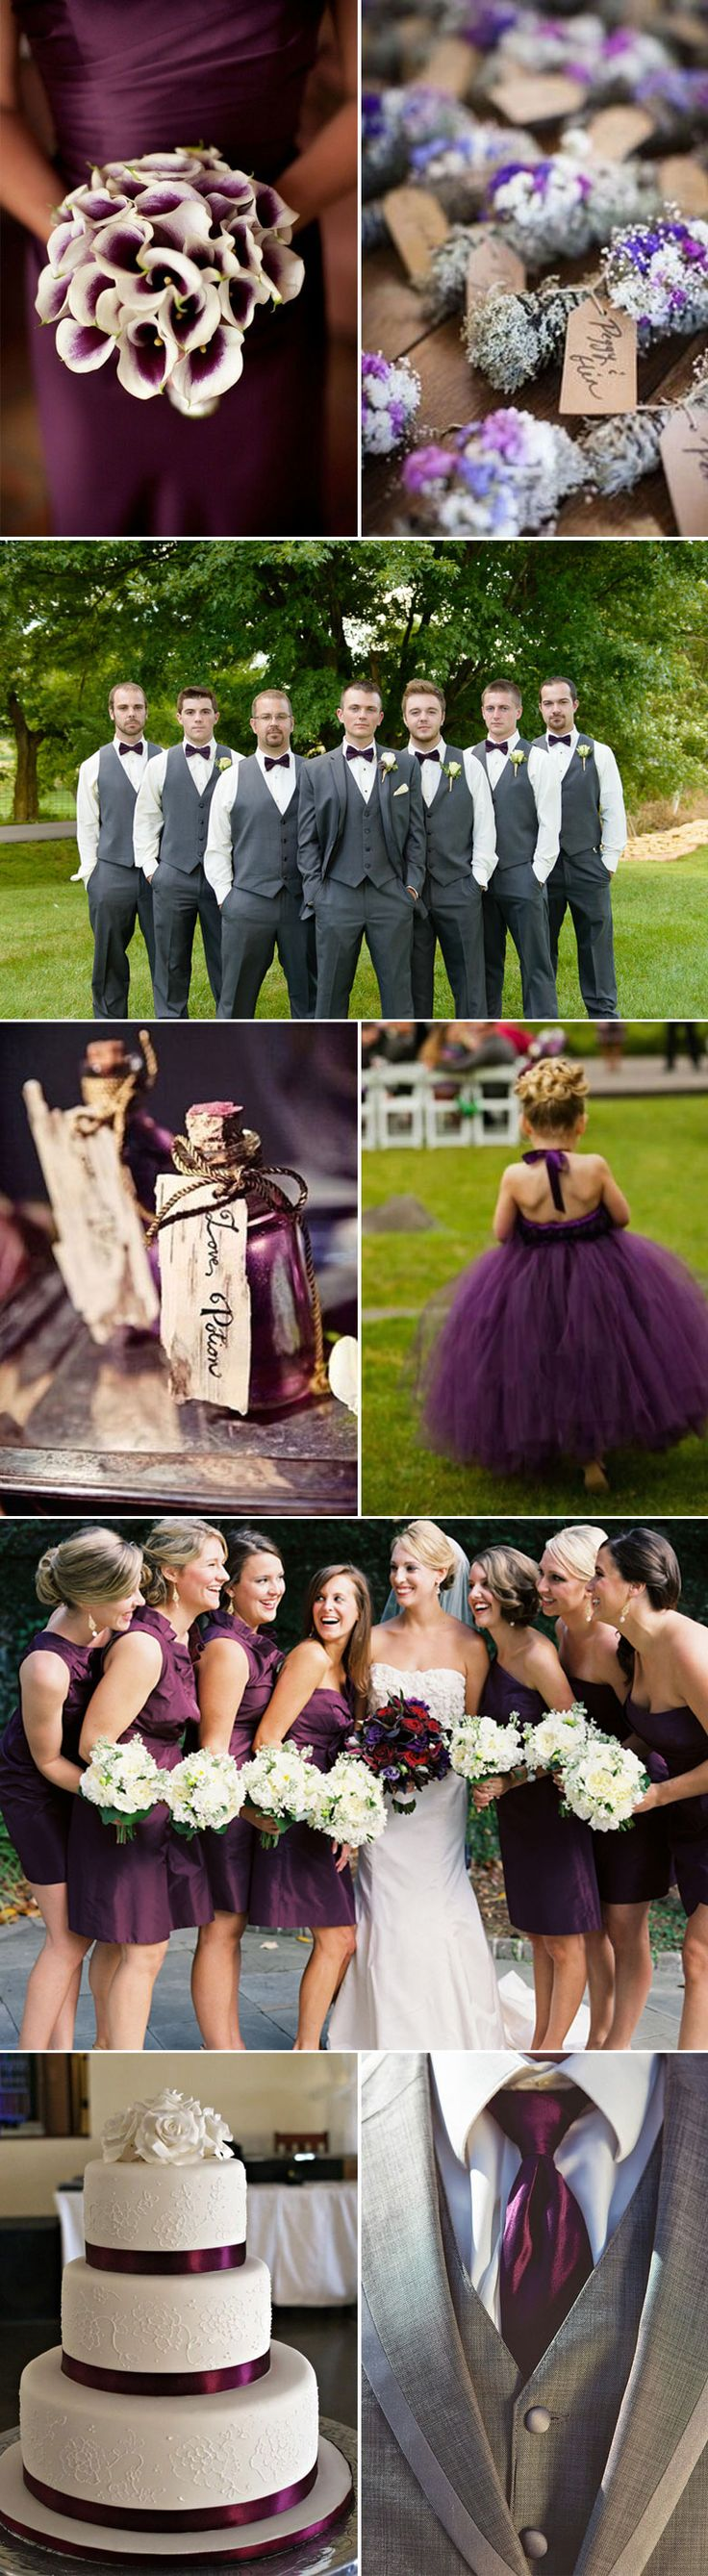 Perfect Plum Wedding Ideas and Inspiration